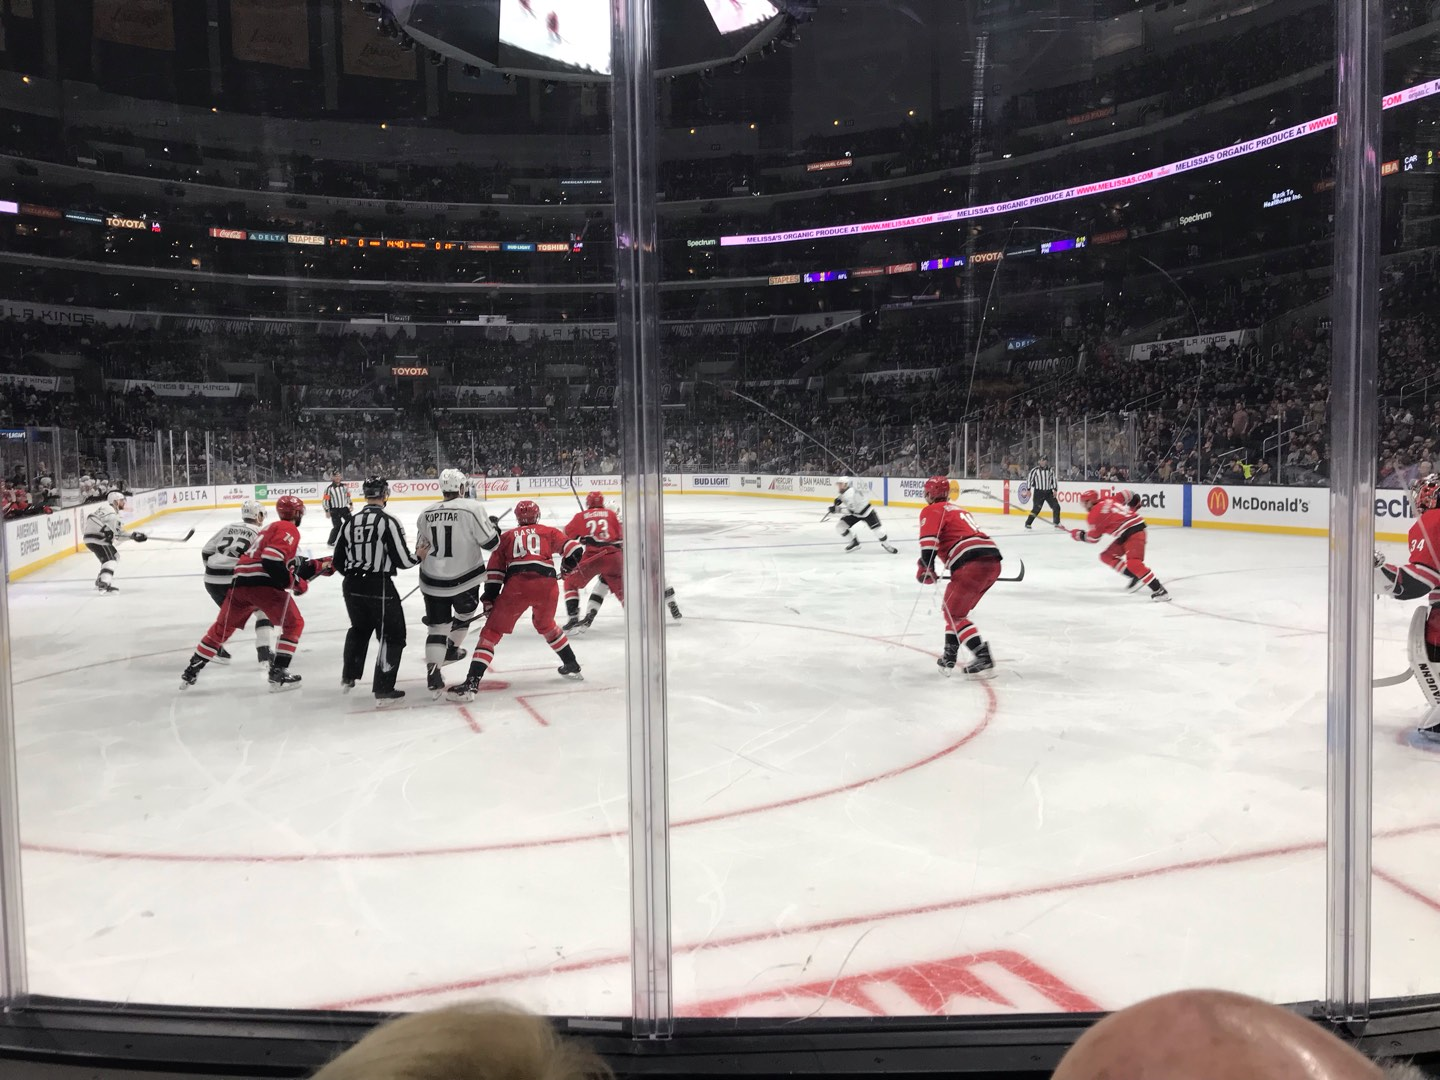 Staples Center Section 116 Row 4 Seat 14